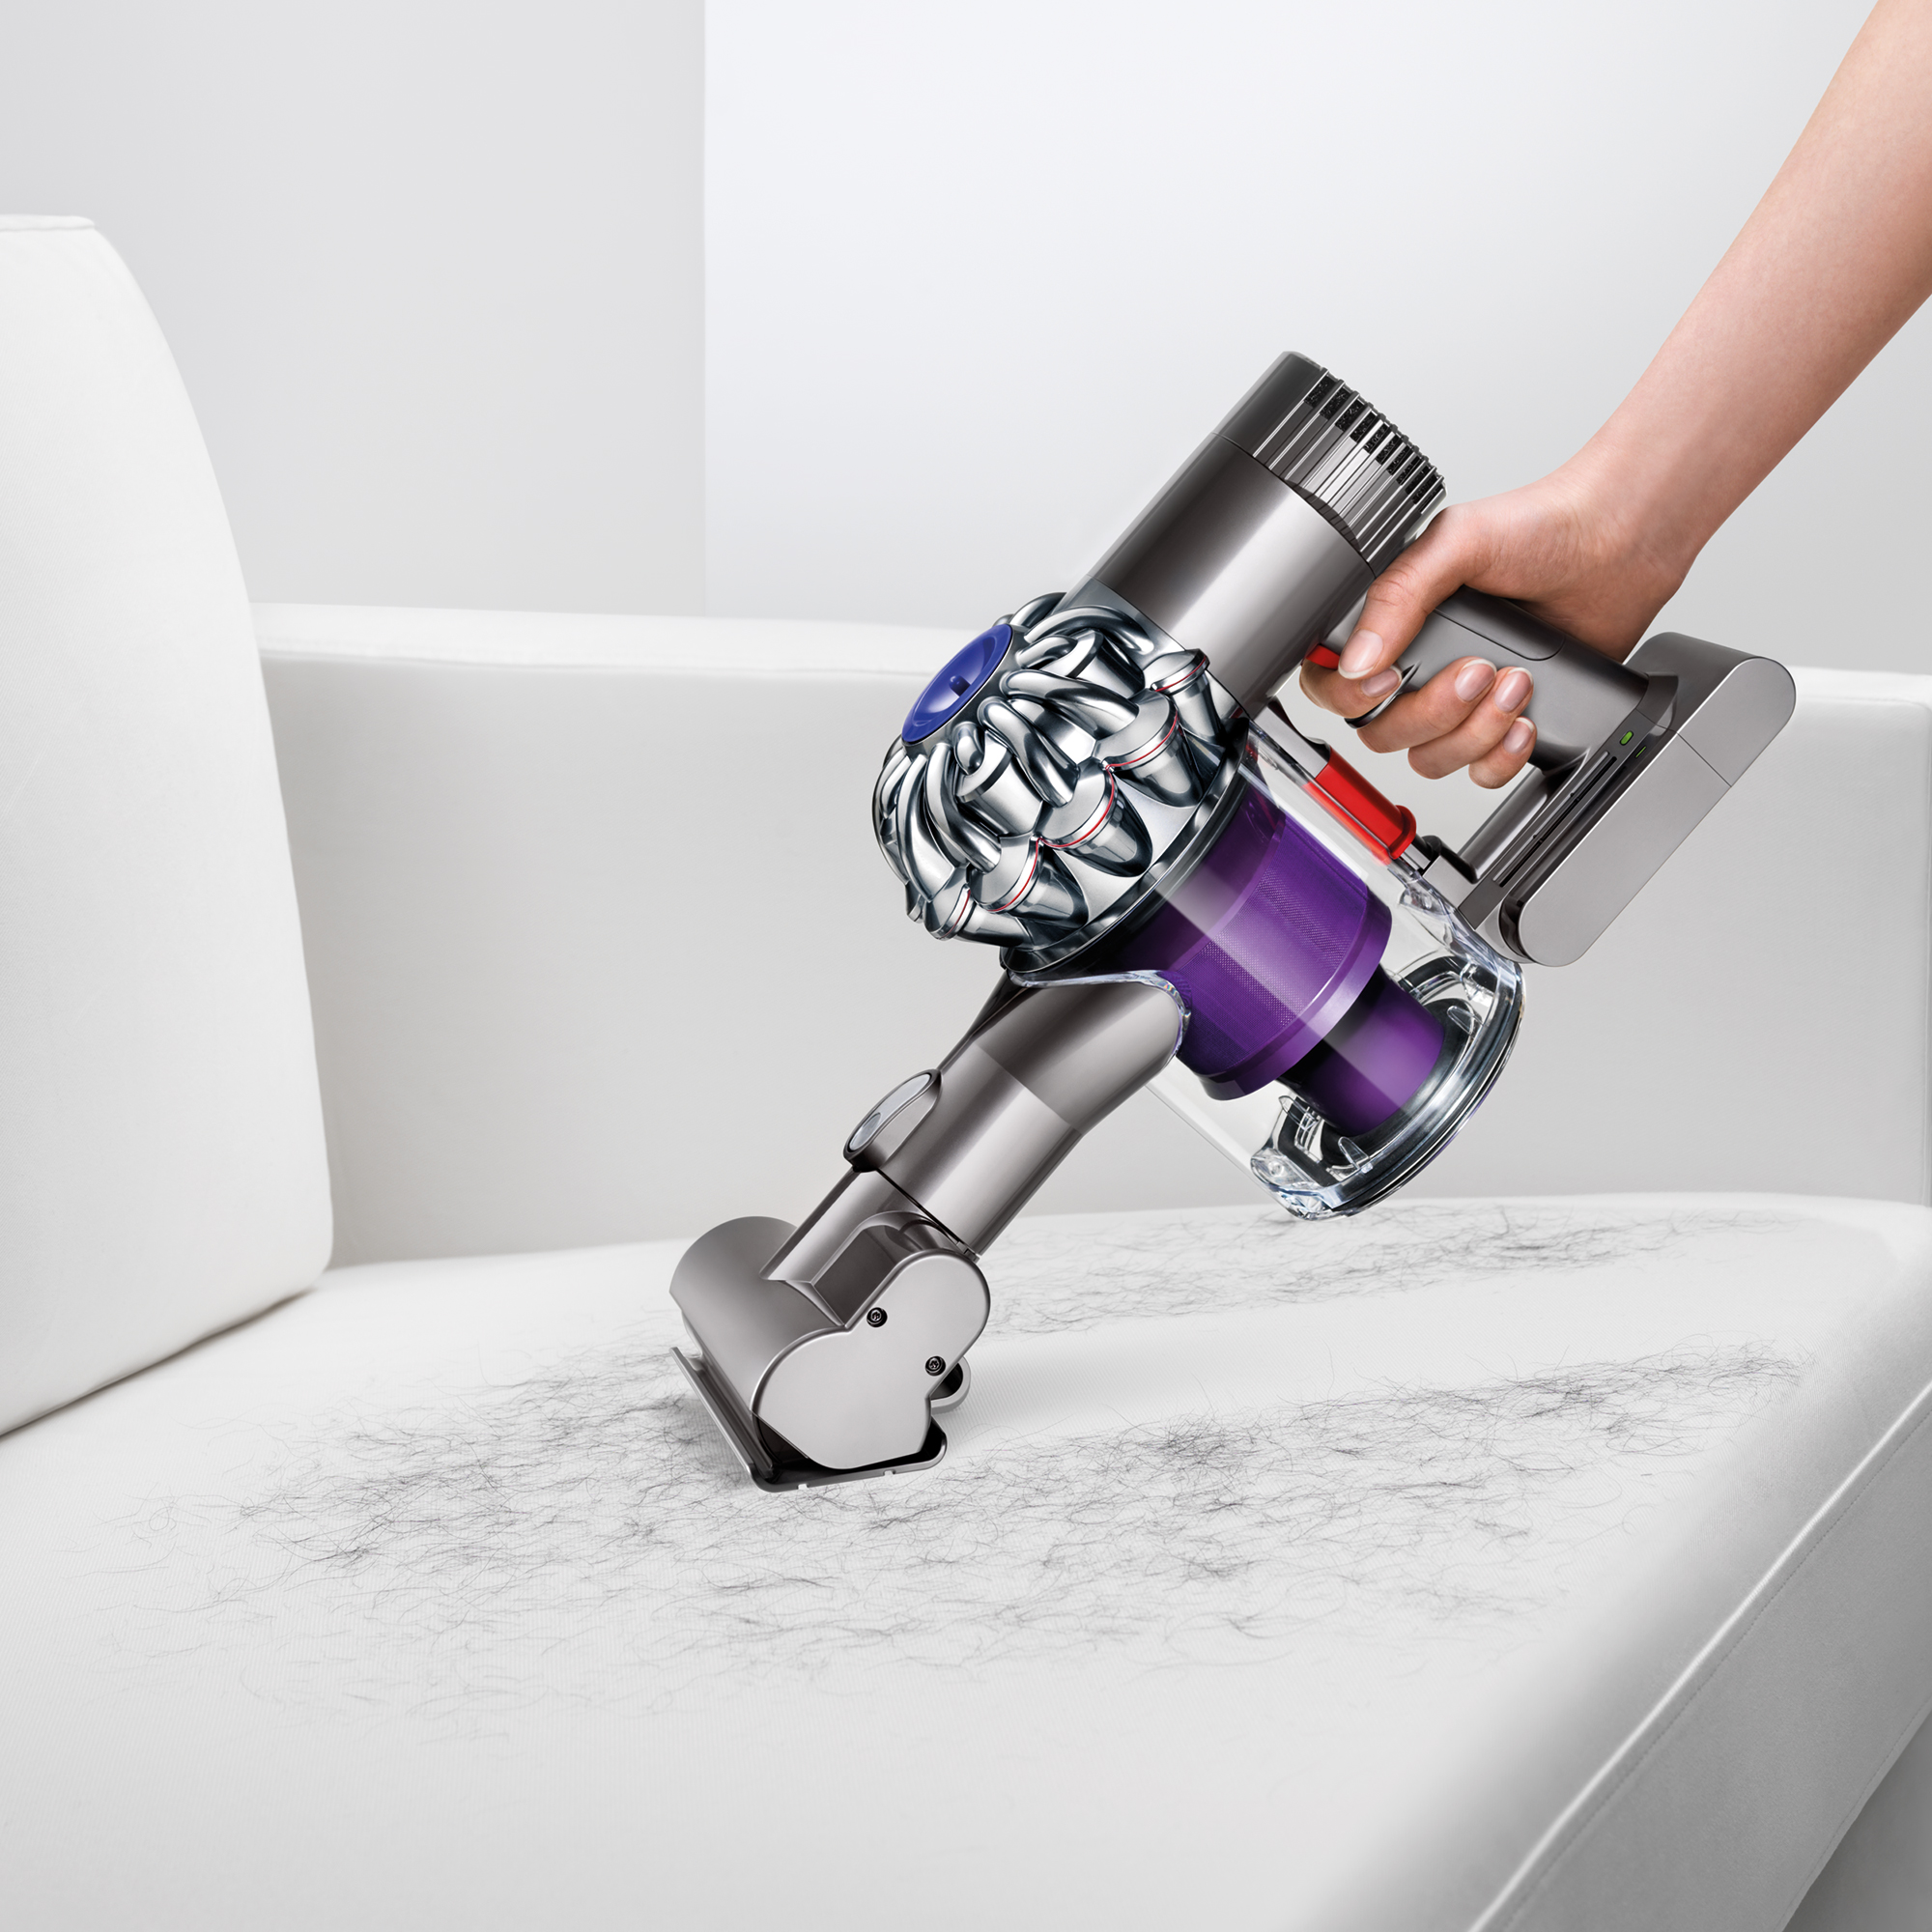 Dyson-V6-Animal-Cordless-Vacuum-Refurbished thumbnail 5